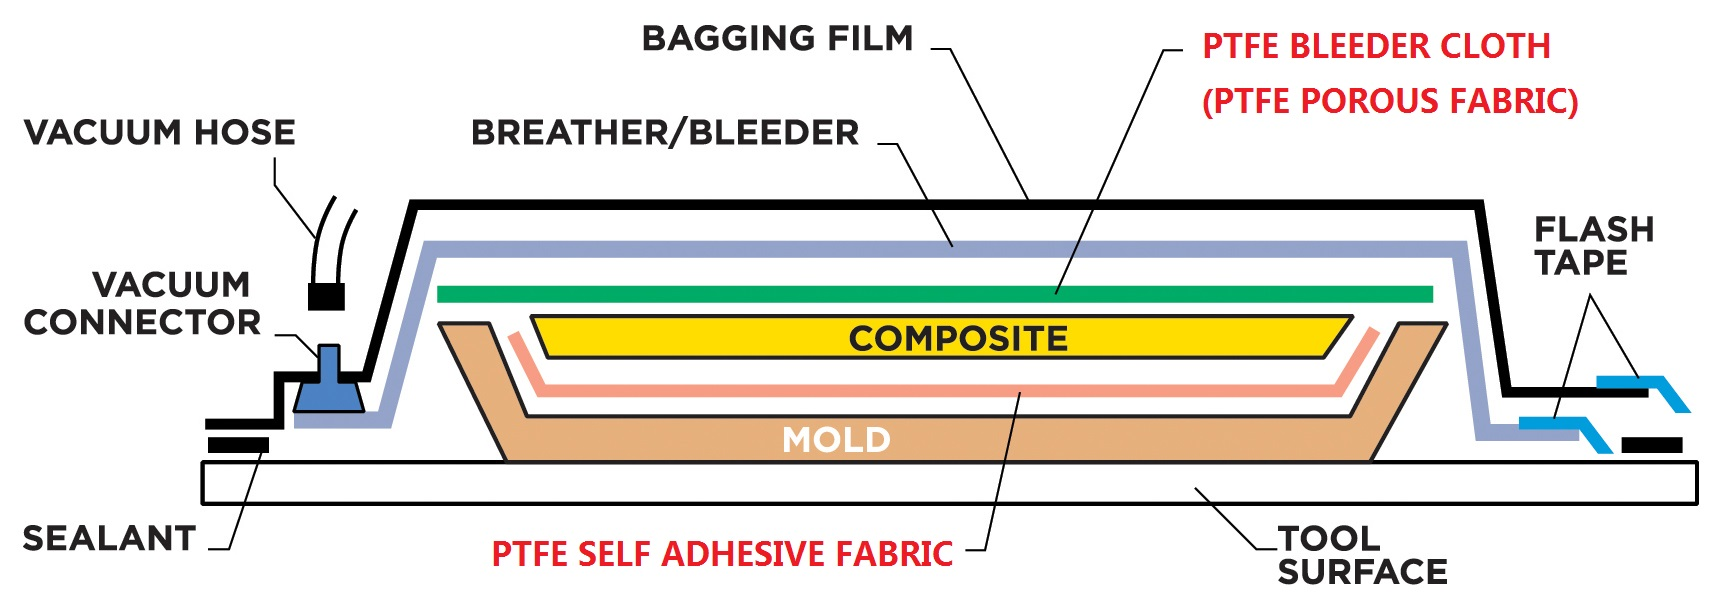 PTFE fabric for vacuum bagging